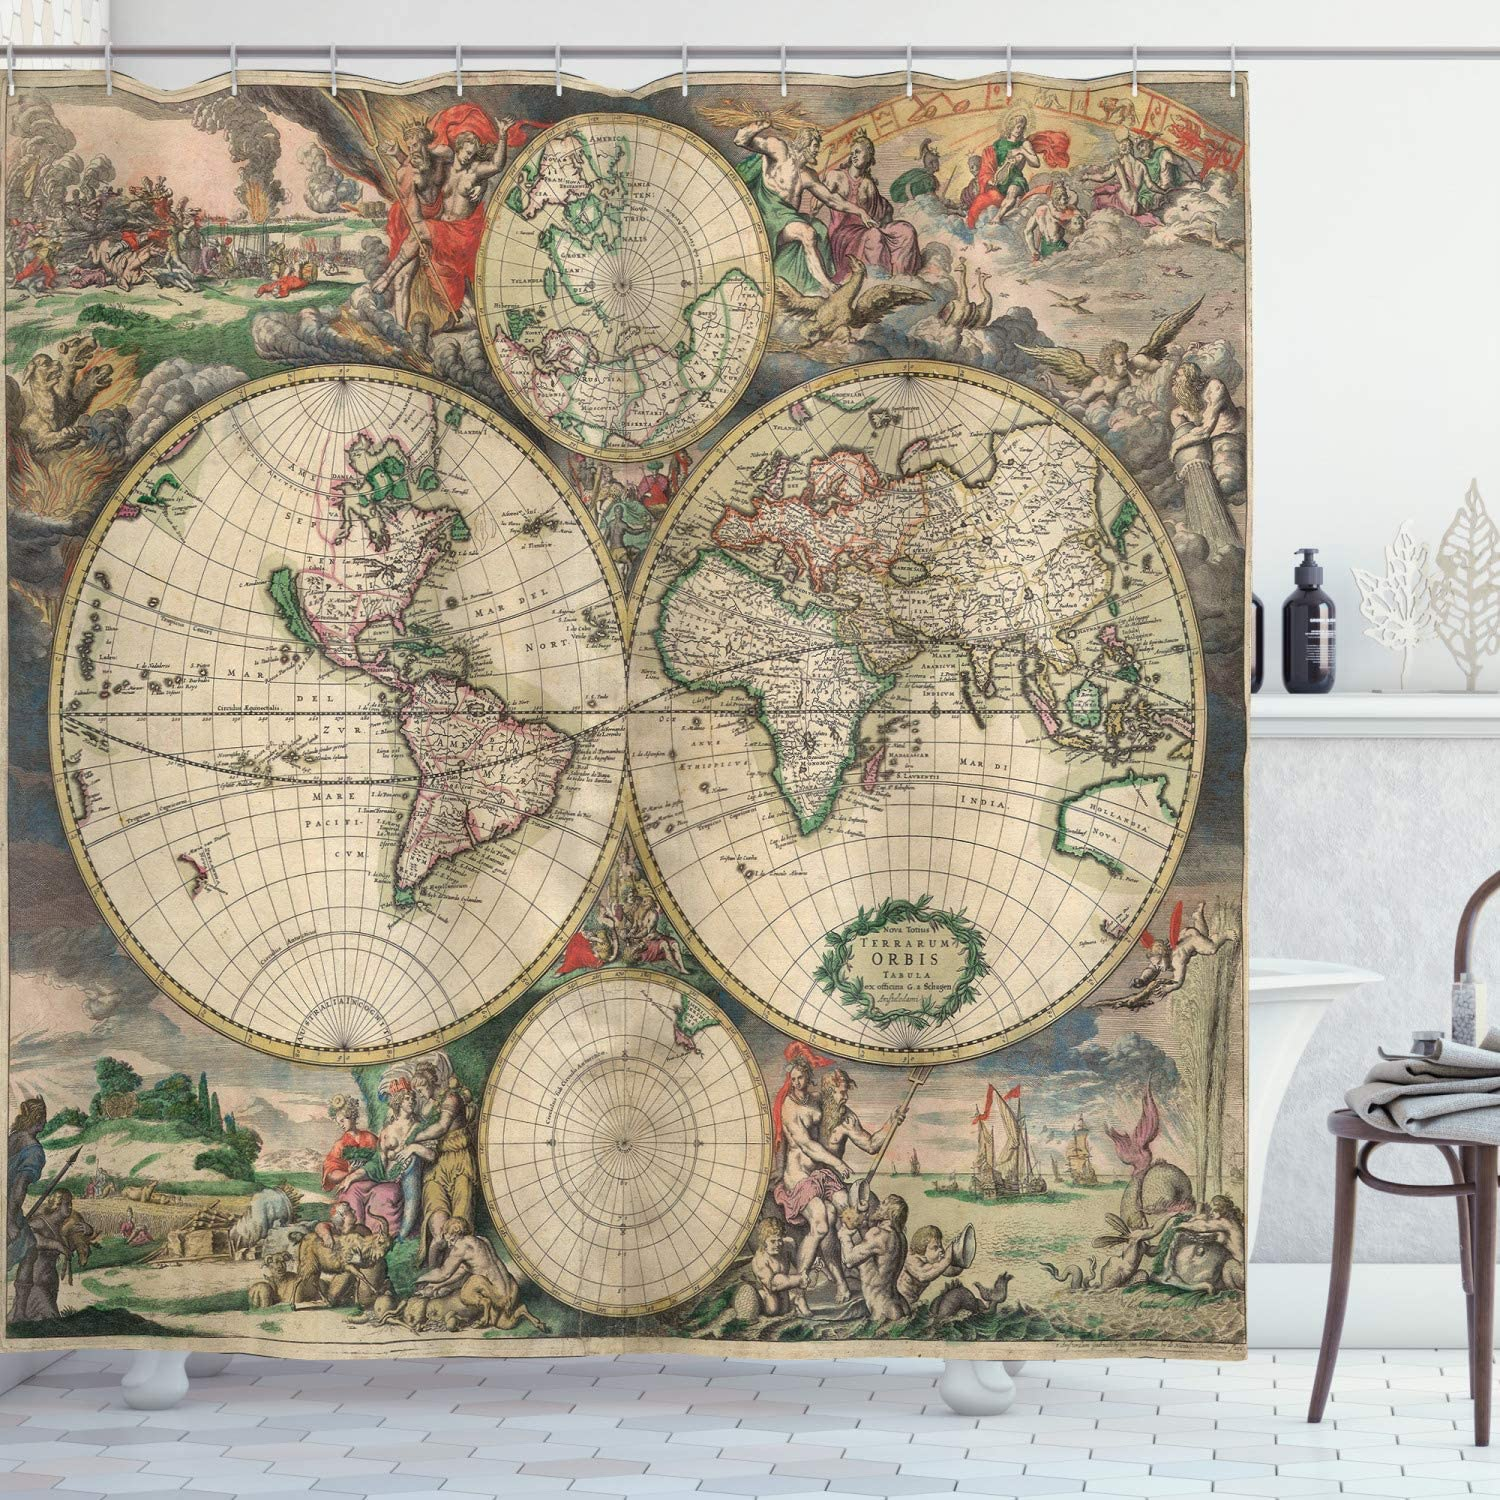 Ambesonne World Map Shower Curtain, Antique Design with Renaissance Continents and Hemispheres Vintage Art, Cloth Fabric Bathroom Decor Set with Hooks, 70